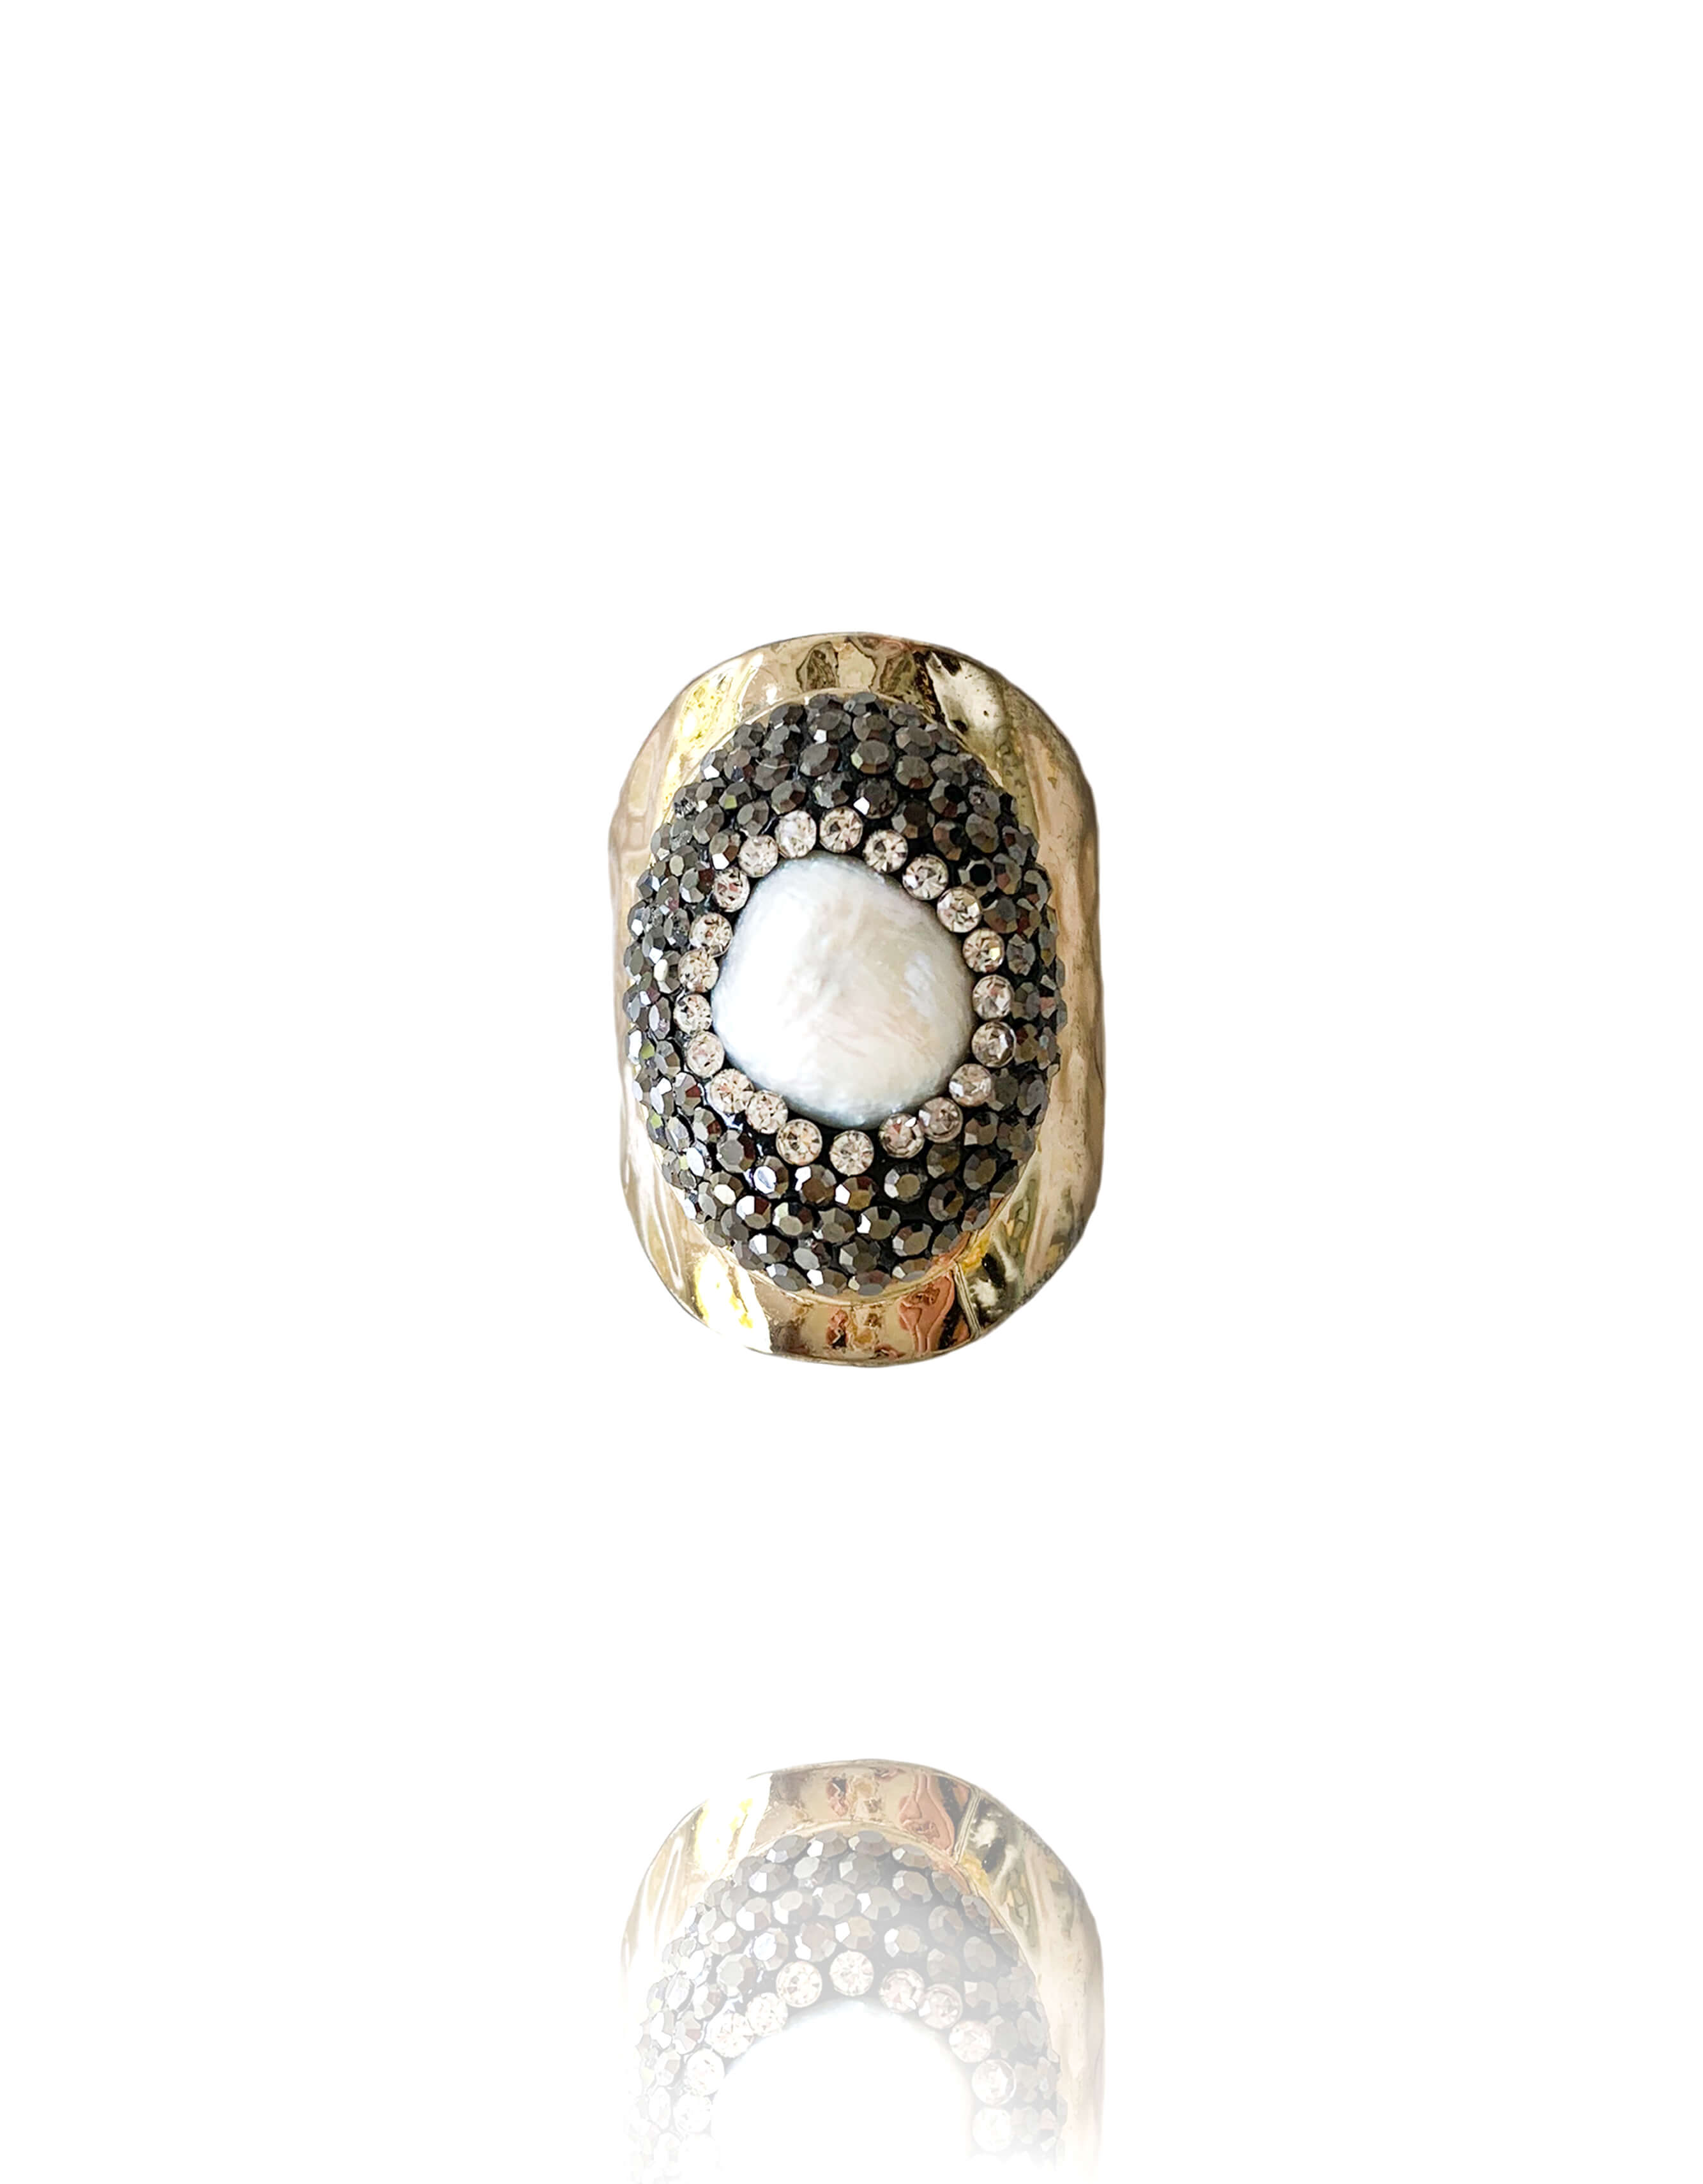 Nacrie Pearl Ring